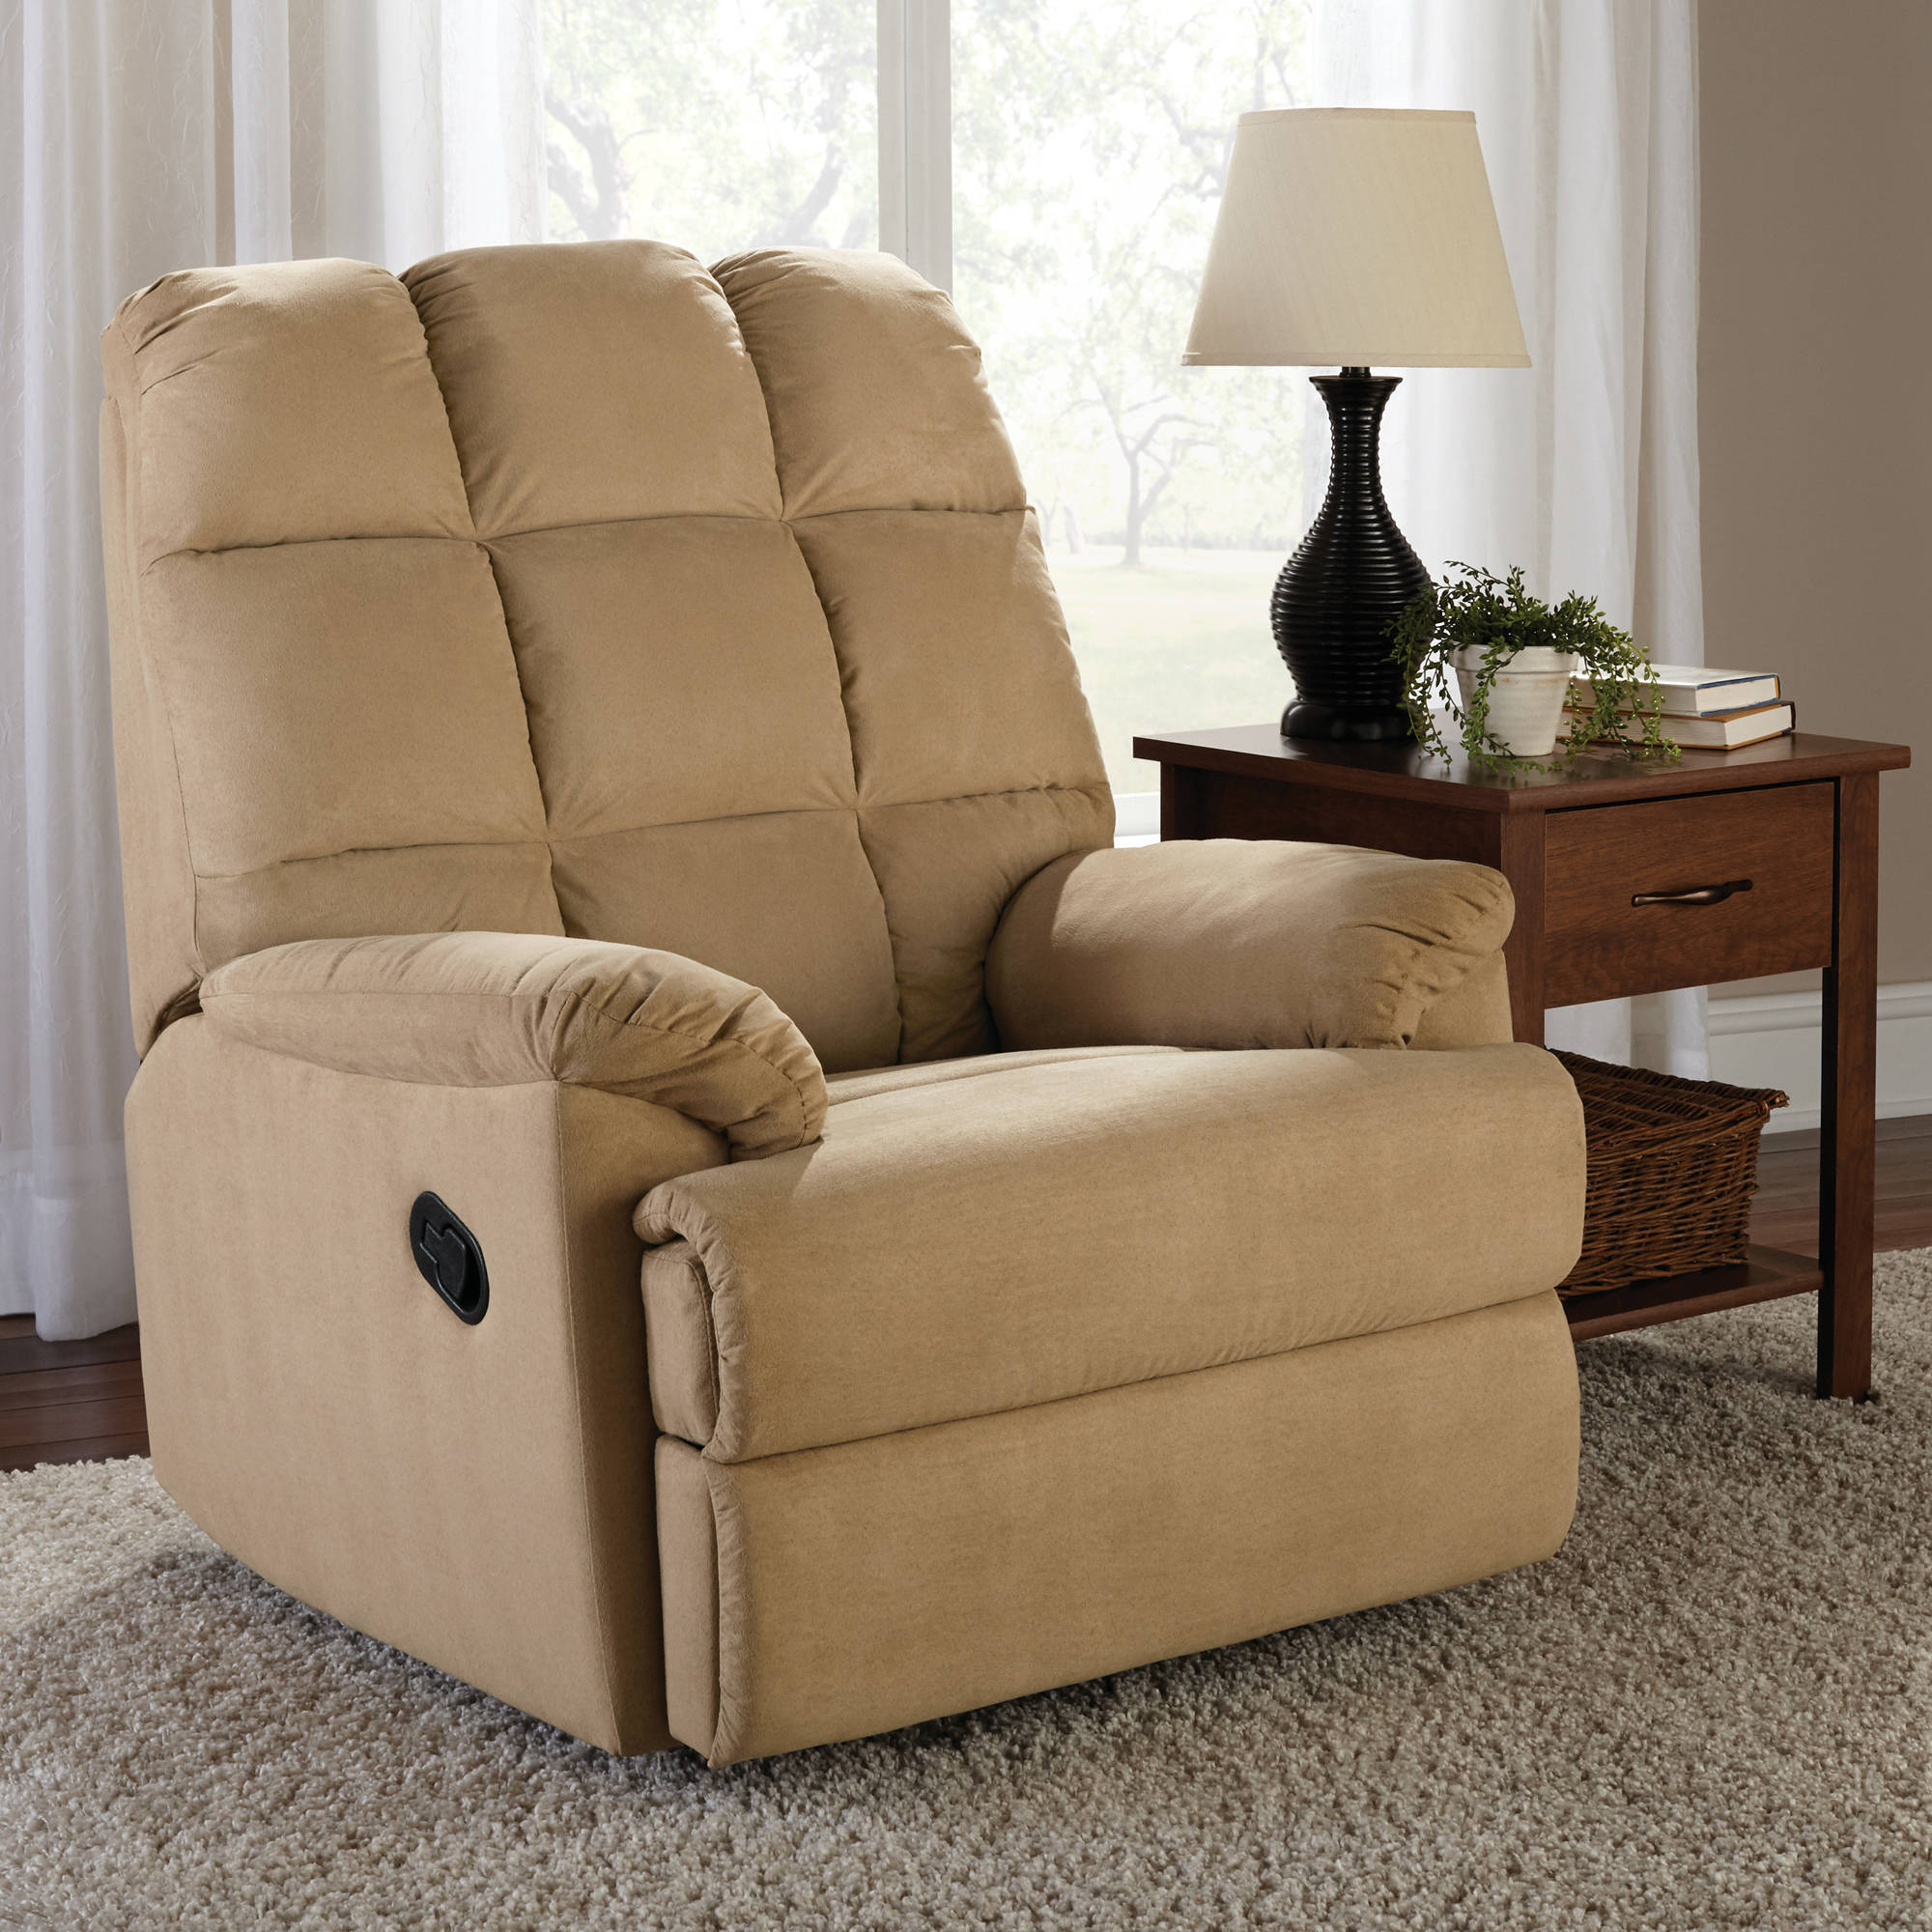 recliner leather patriot kane room products rocker recliners furniture living swivel s